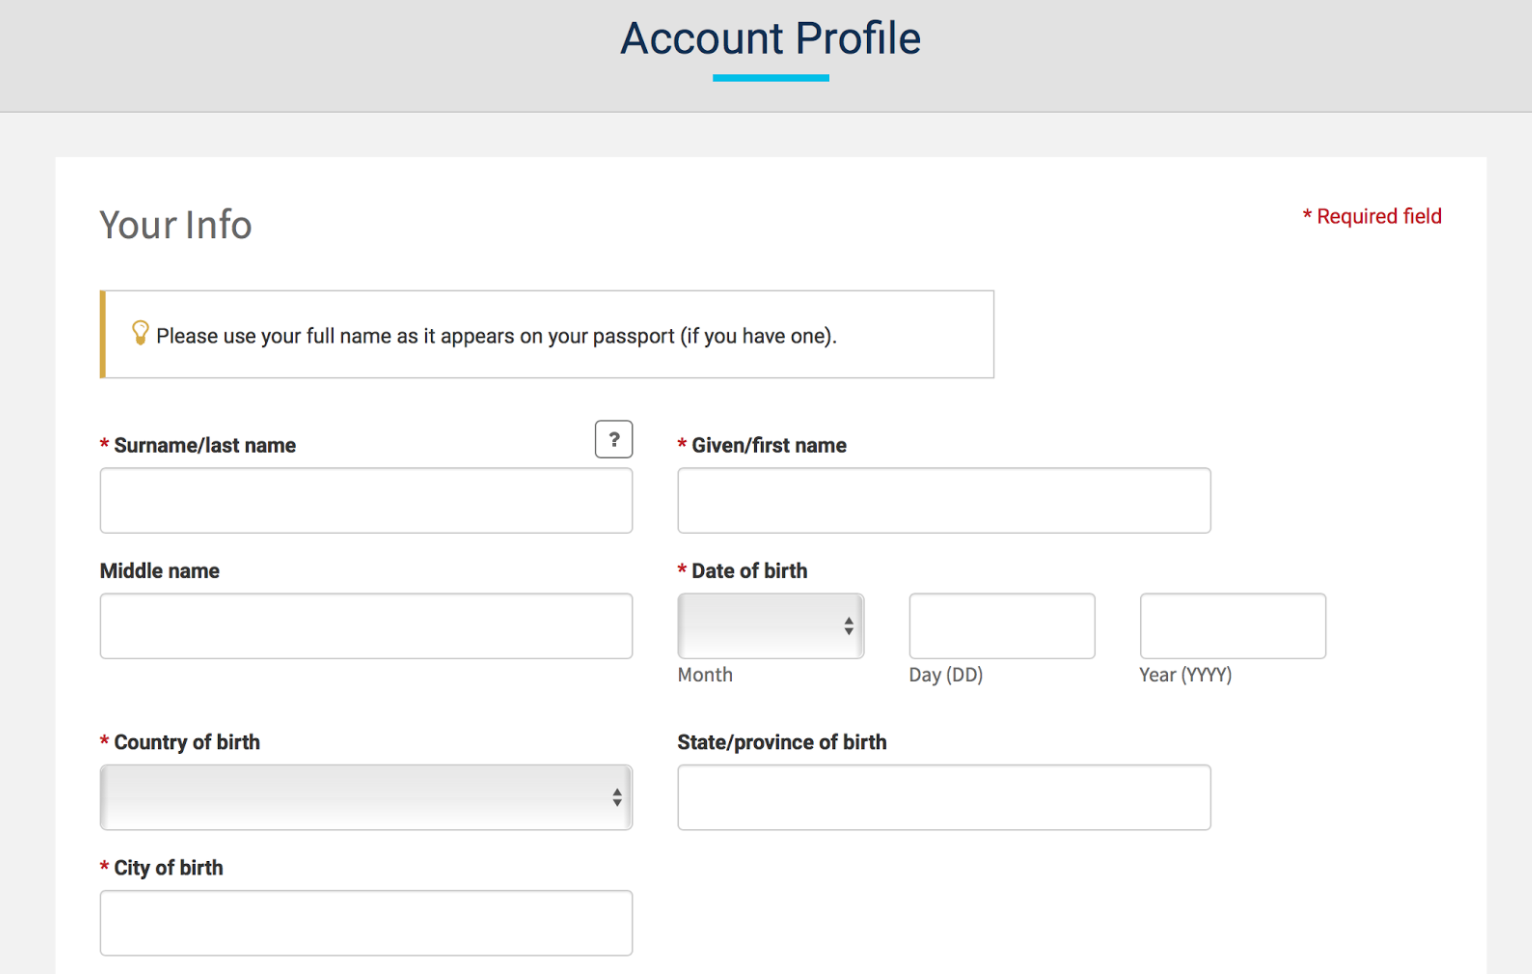 Trusted traveler account profile